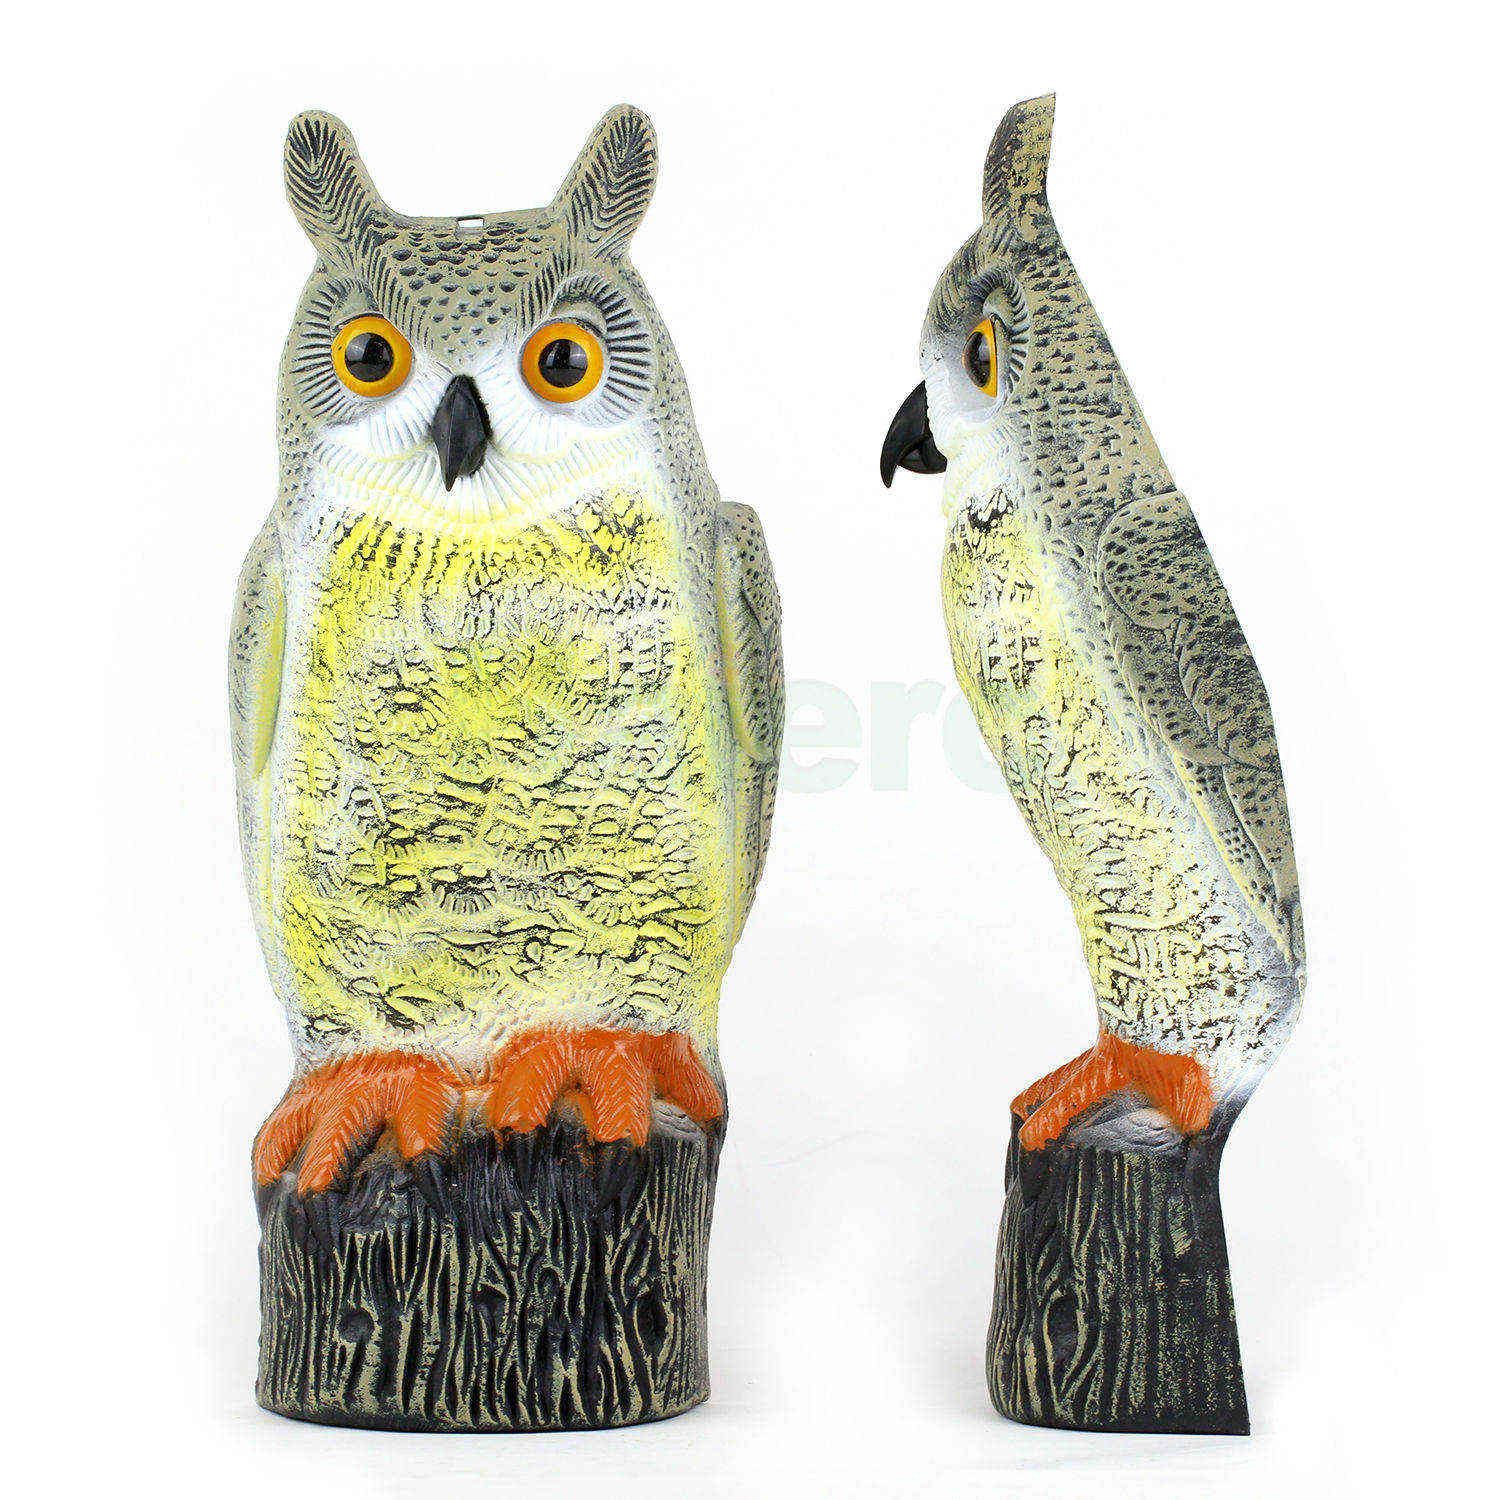 Haierc high quality one side bird scare plastic owl HC1640(1)